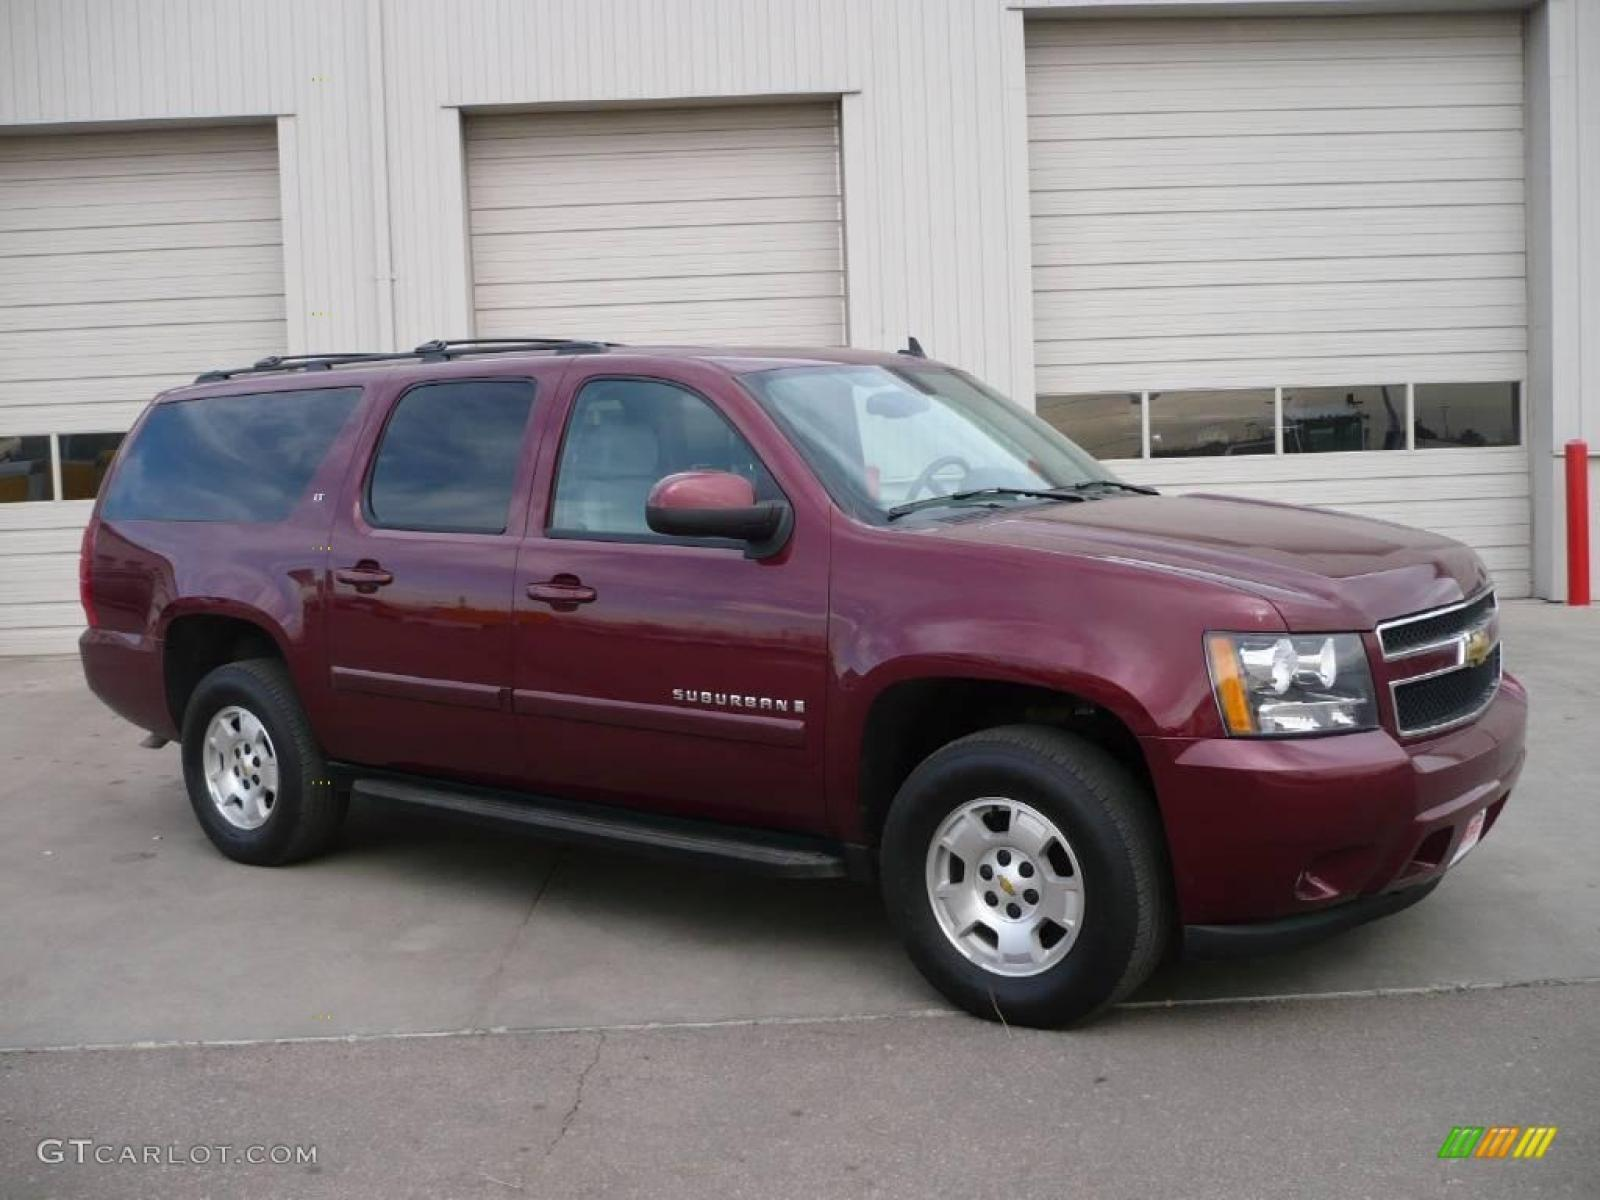 2008 chevy suburban owners manual. Black Bedroom Furniture Sets. Home Design Ideas